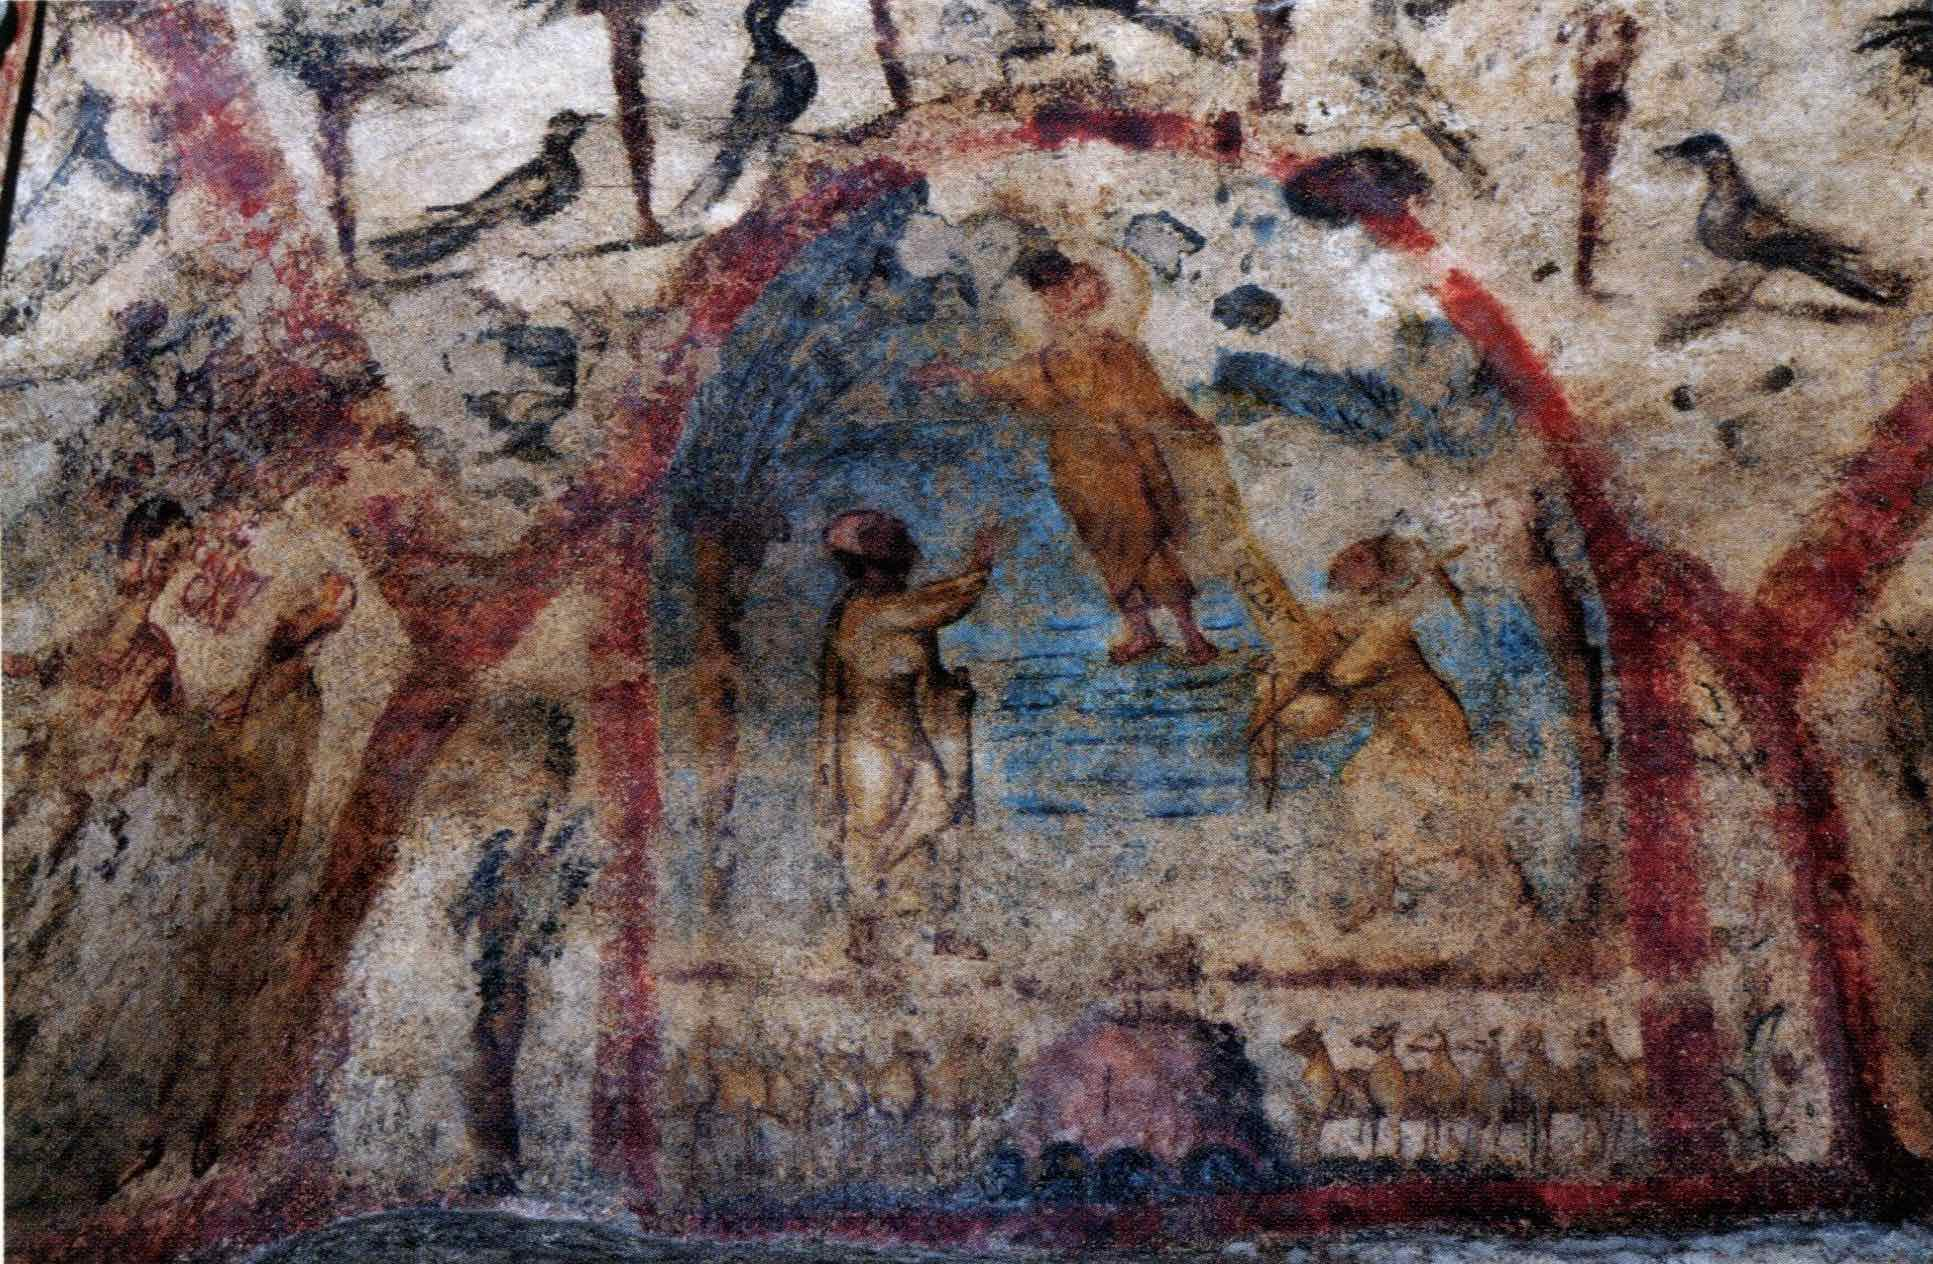 Catacombes Grottaferrata 350-70